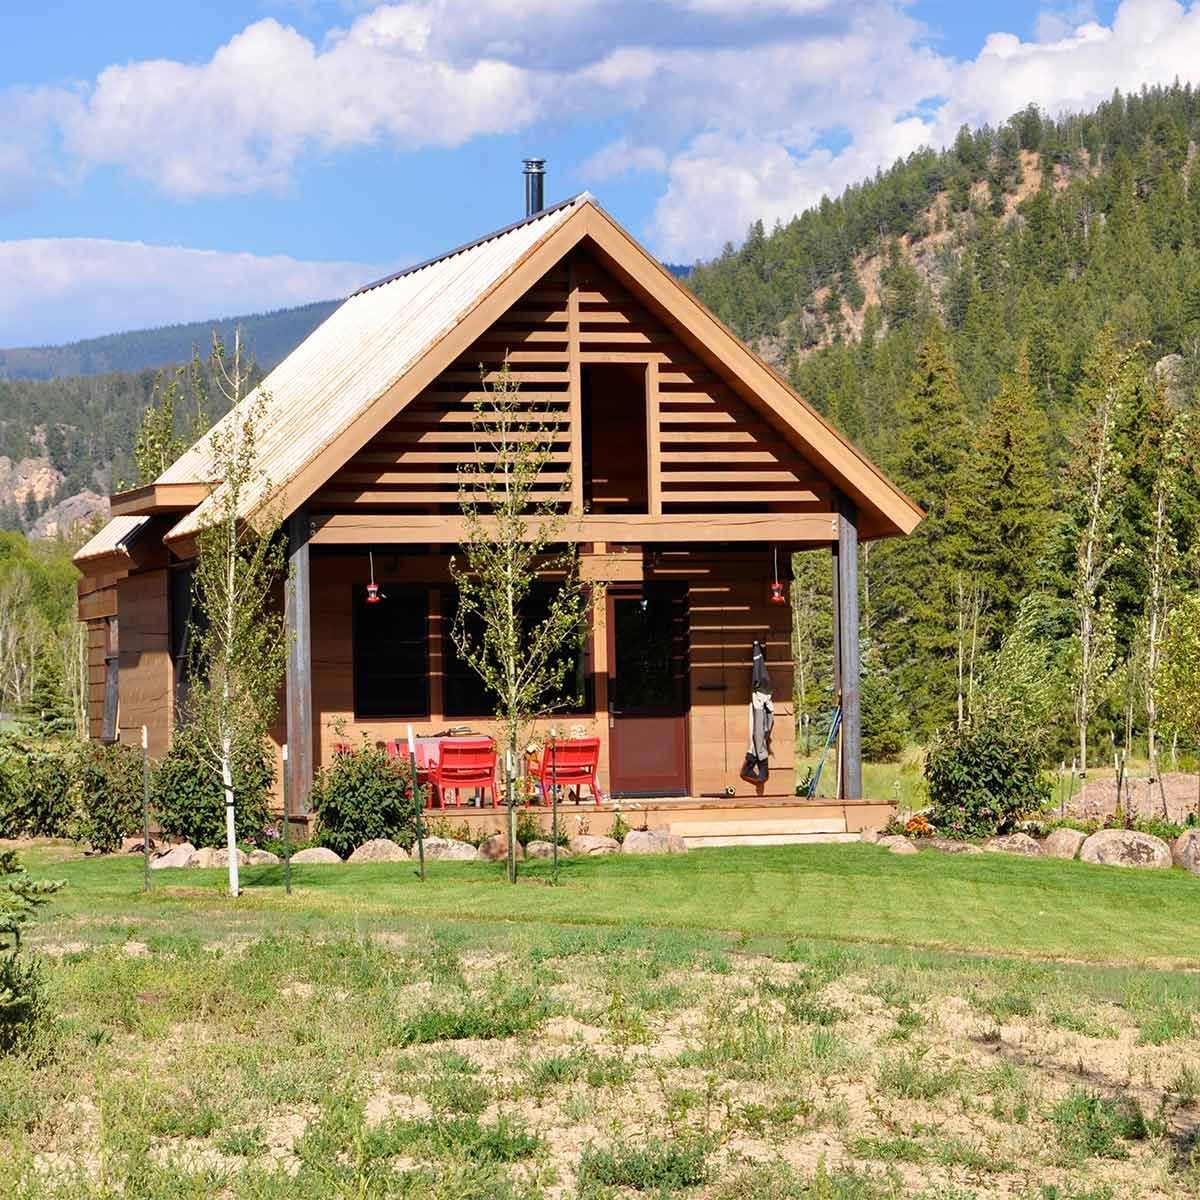 16 Amazing Cabins You Have to See to Believe Cabins